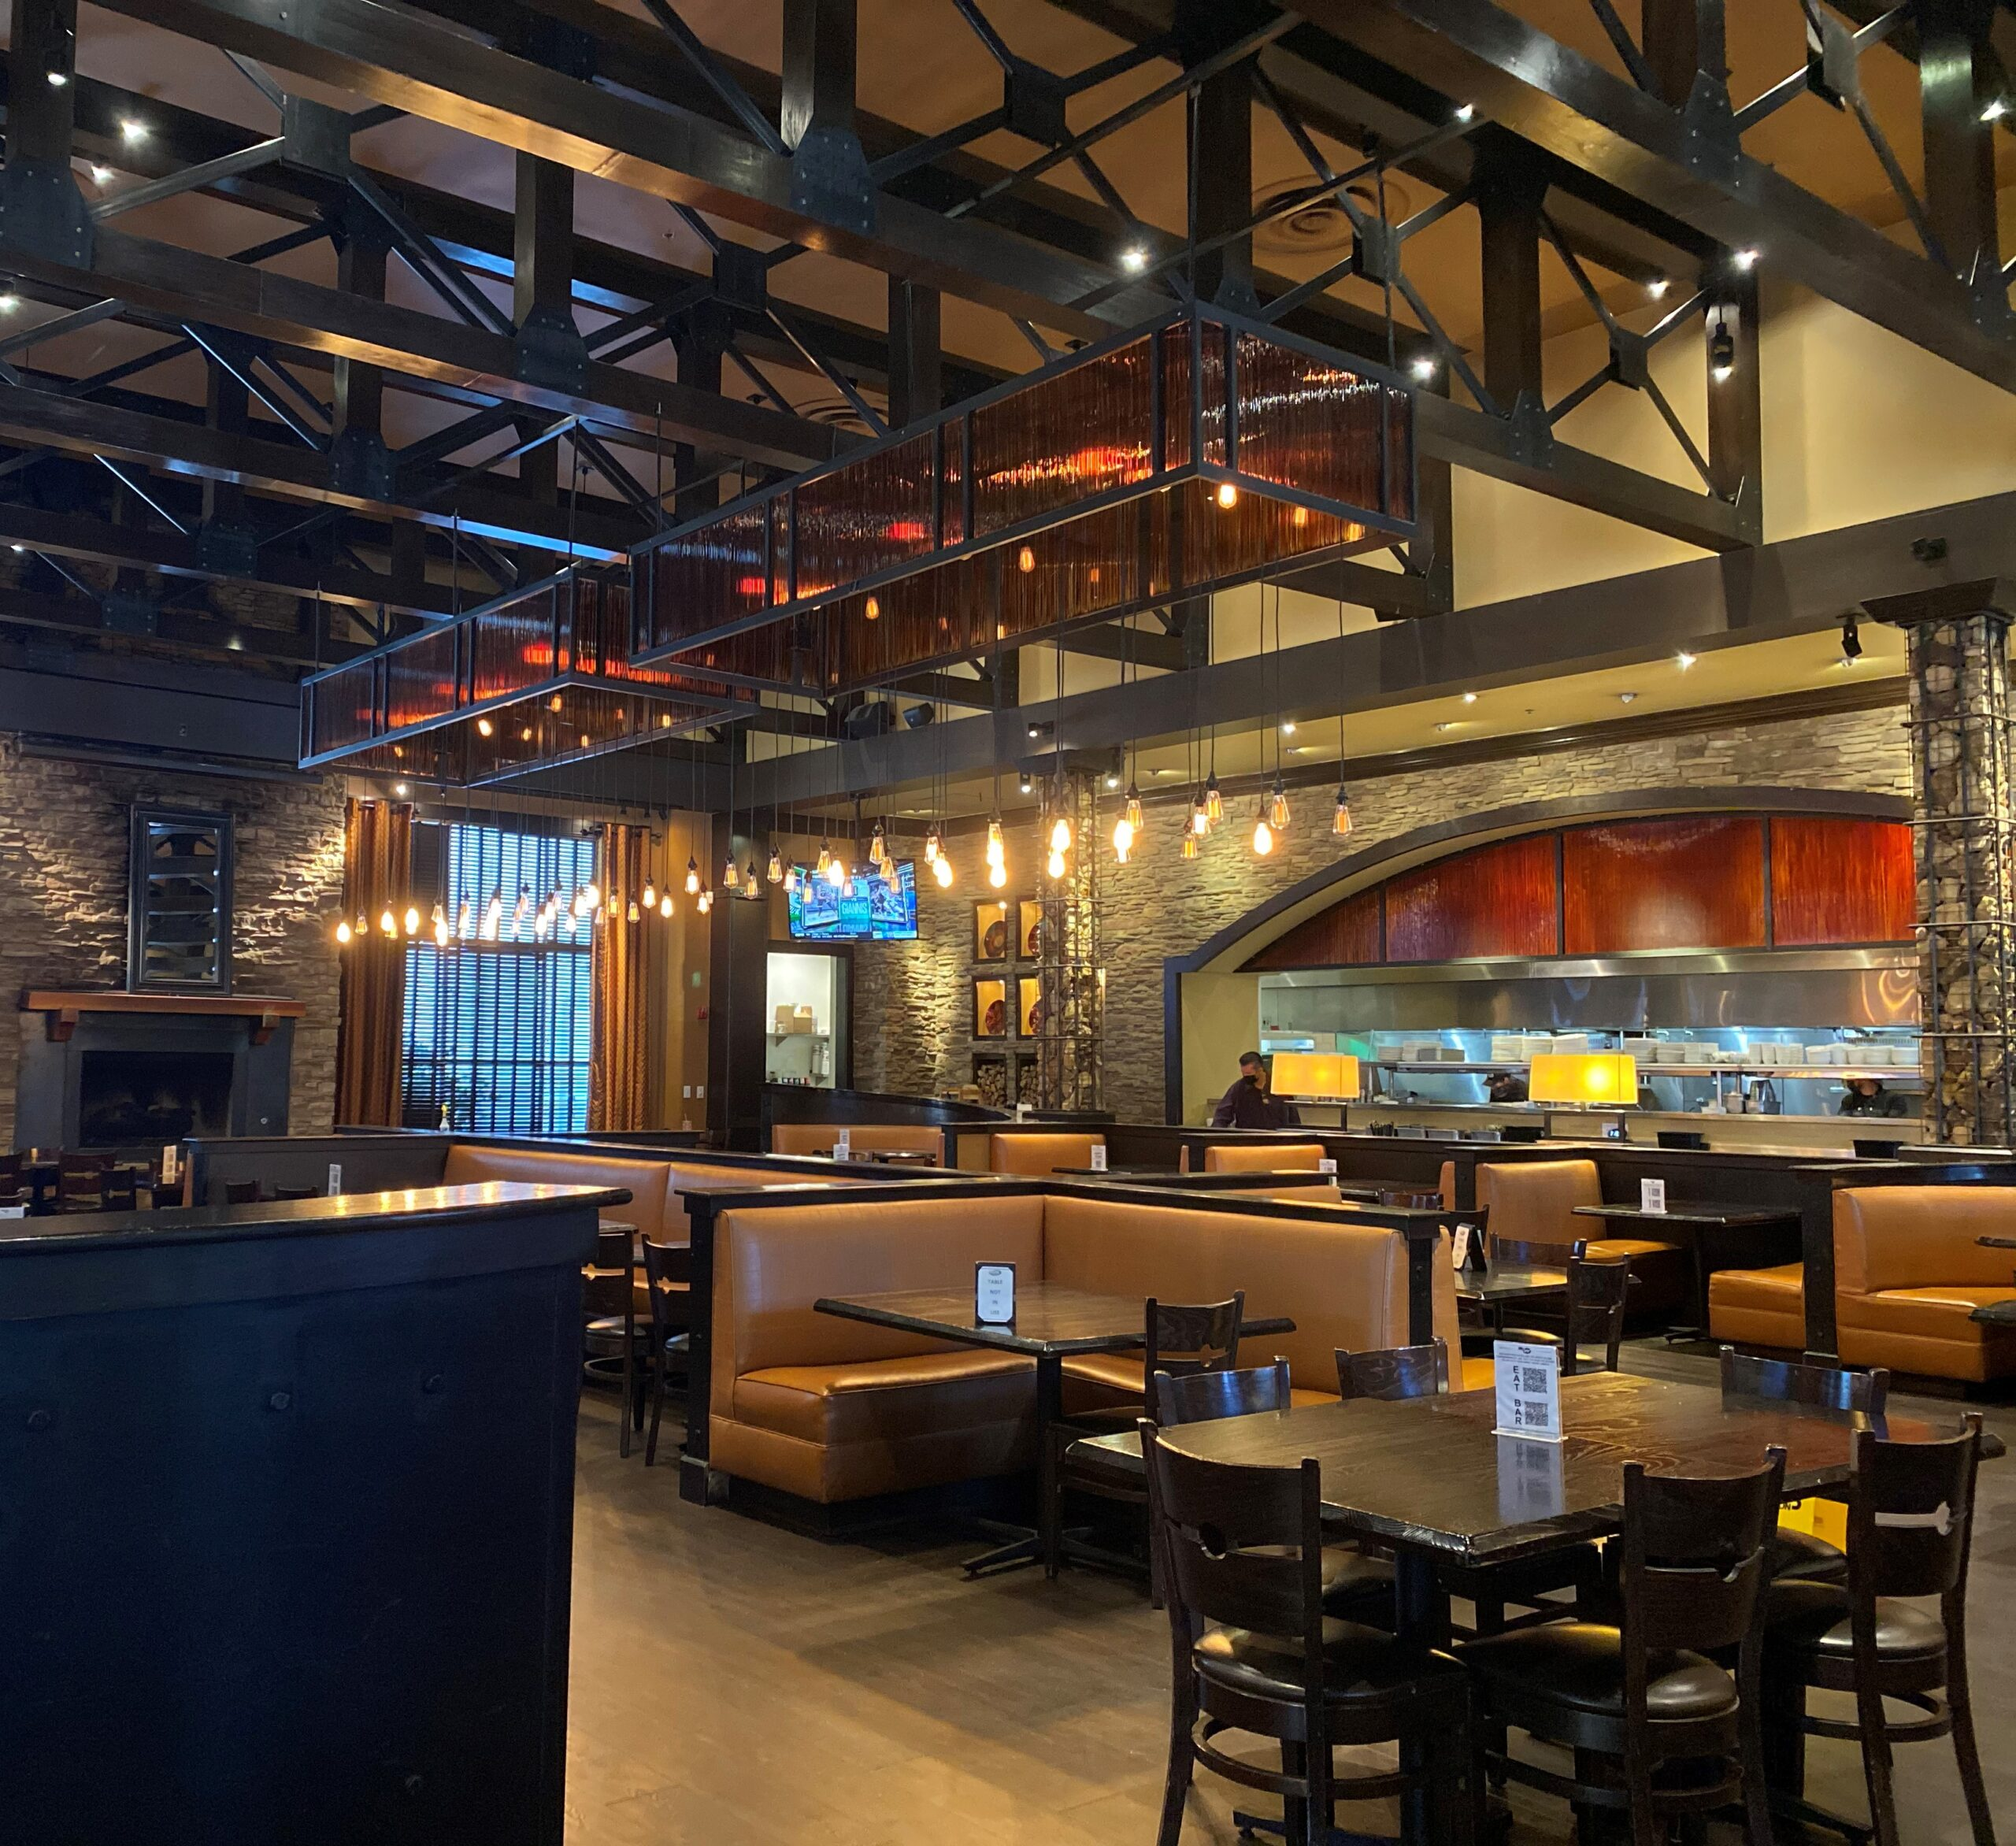 A successful restaurant lighting project